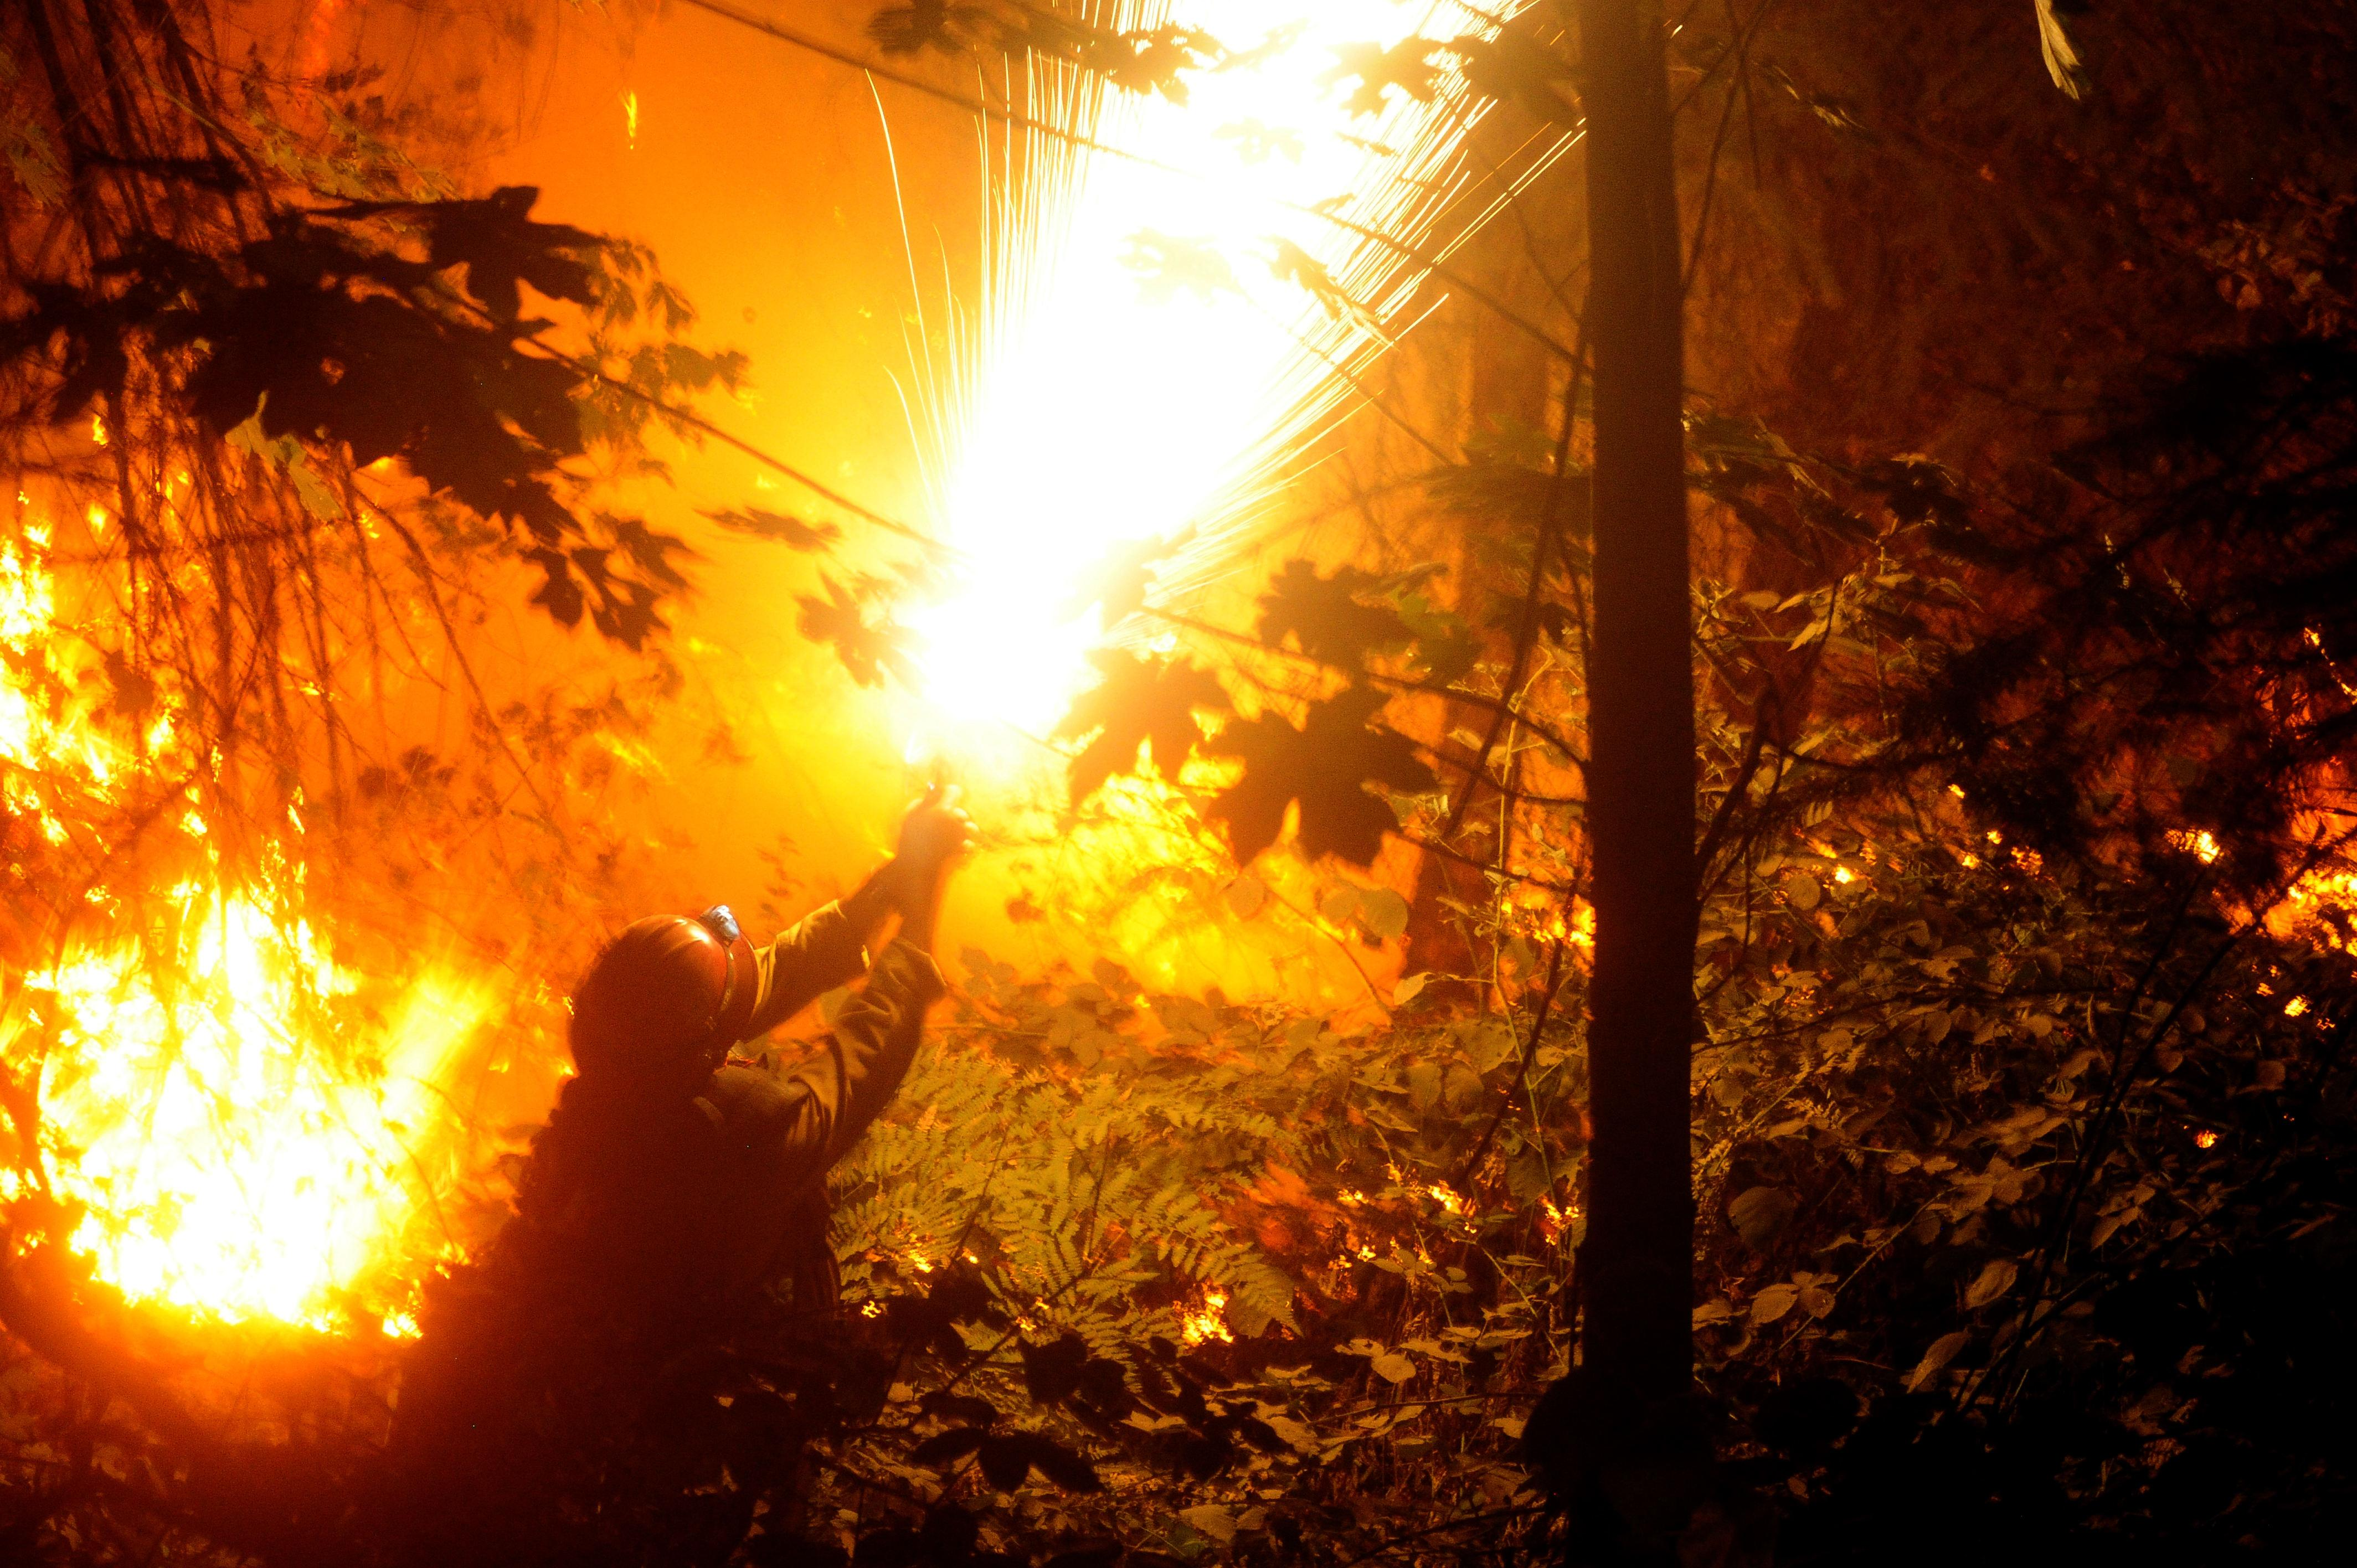 <p>A U.S. Forest Service Laguna Hotshot uses a flare gun to start a controlled burn along a steep slope at the Delta Fire in Redding, Calif., Sept. 6, 2018. (Photo: Neal Waters/ZUMA Wire) </p>